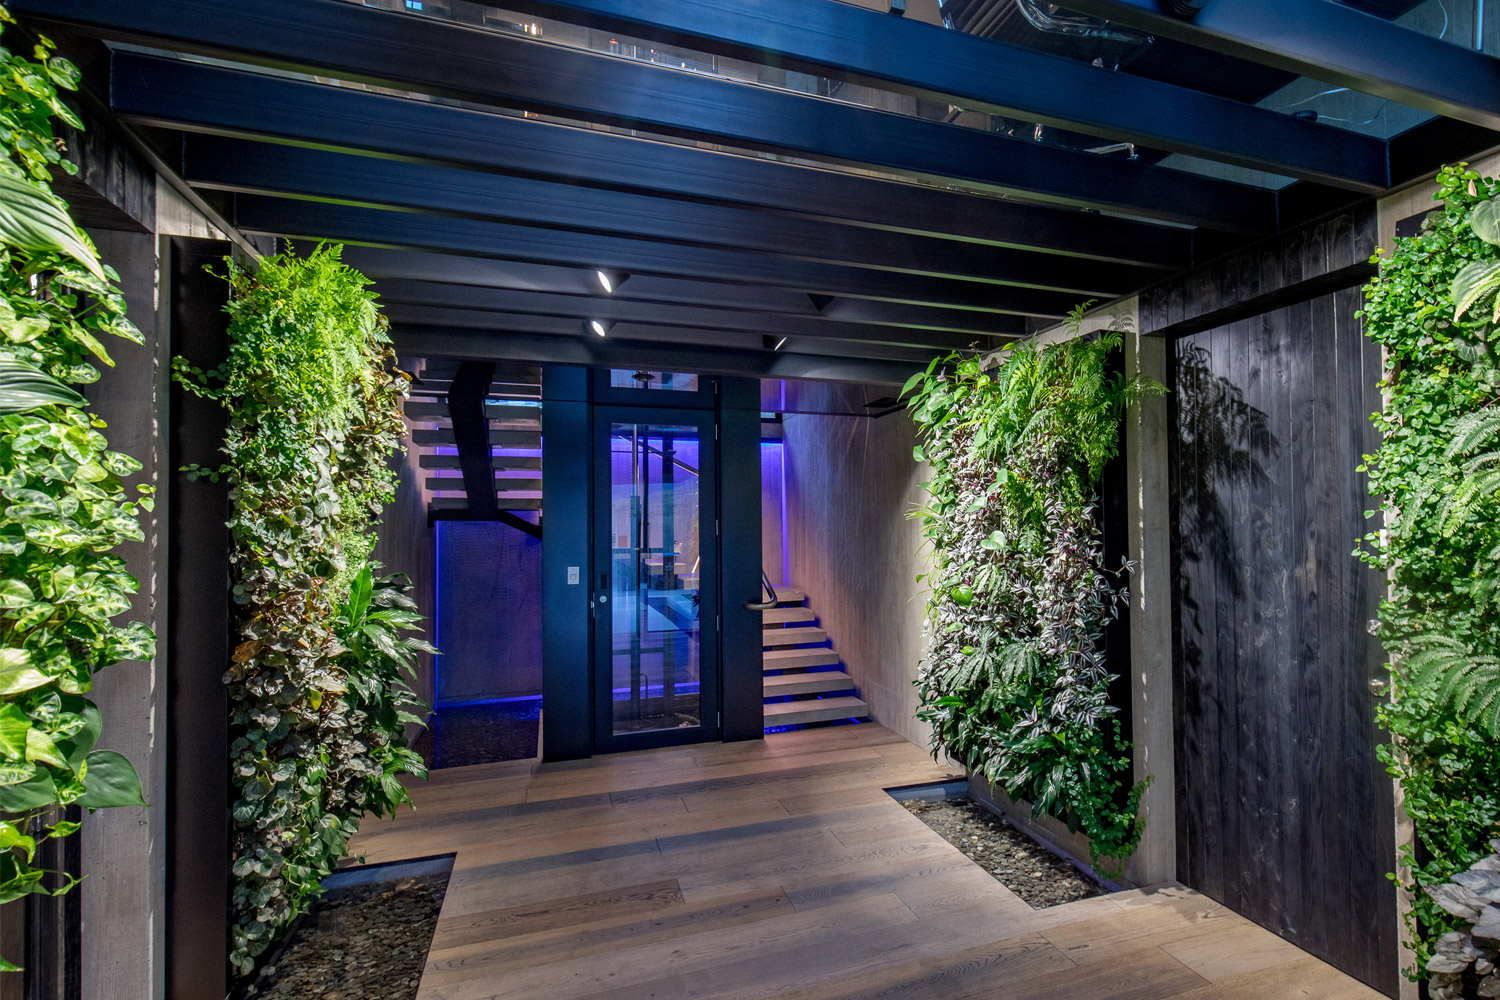 A living wall at the entrance to an architecturally designed house called Cascata in Queenstown